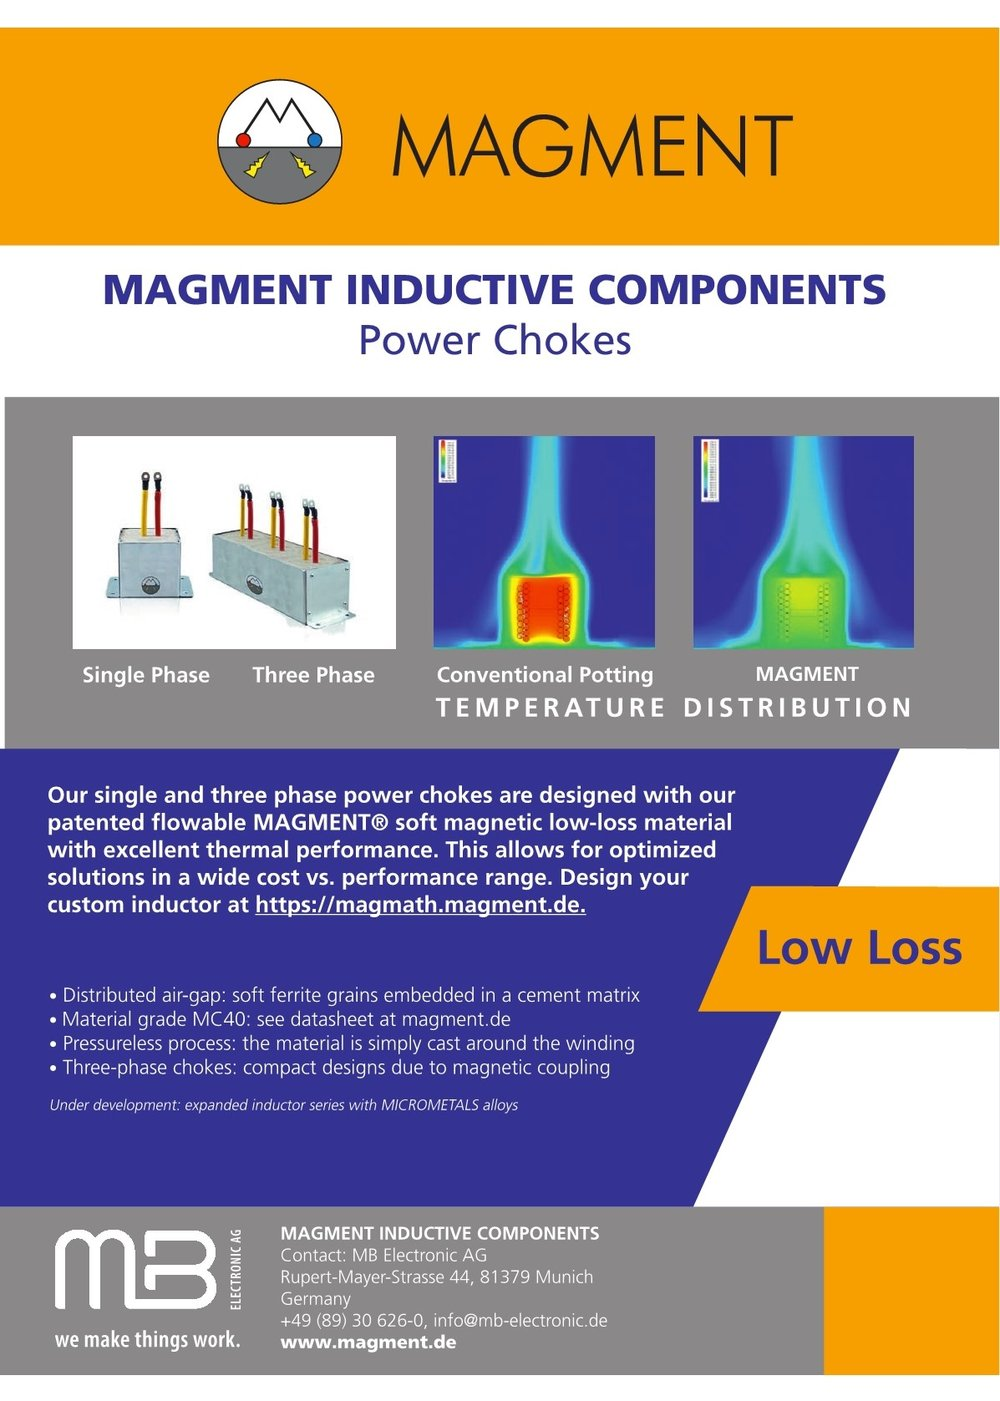 Flyer_MAGMENT-INDUCTIVE-COMPONENTS_2018_1.jpg